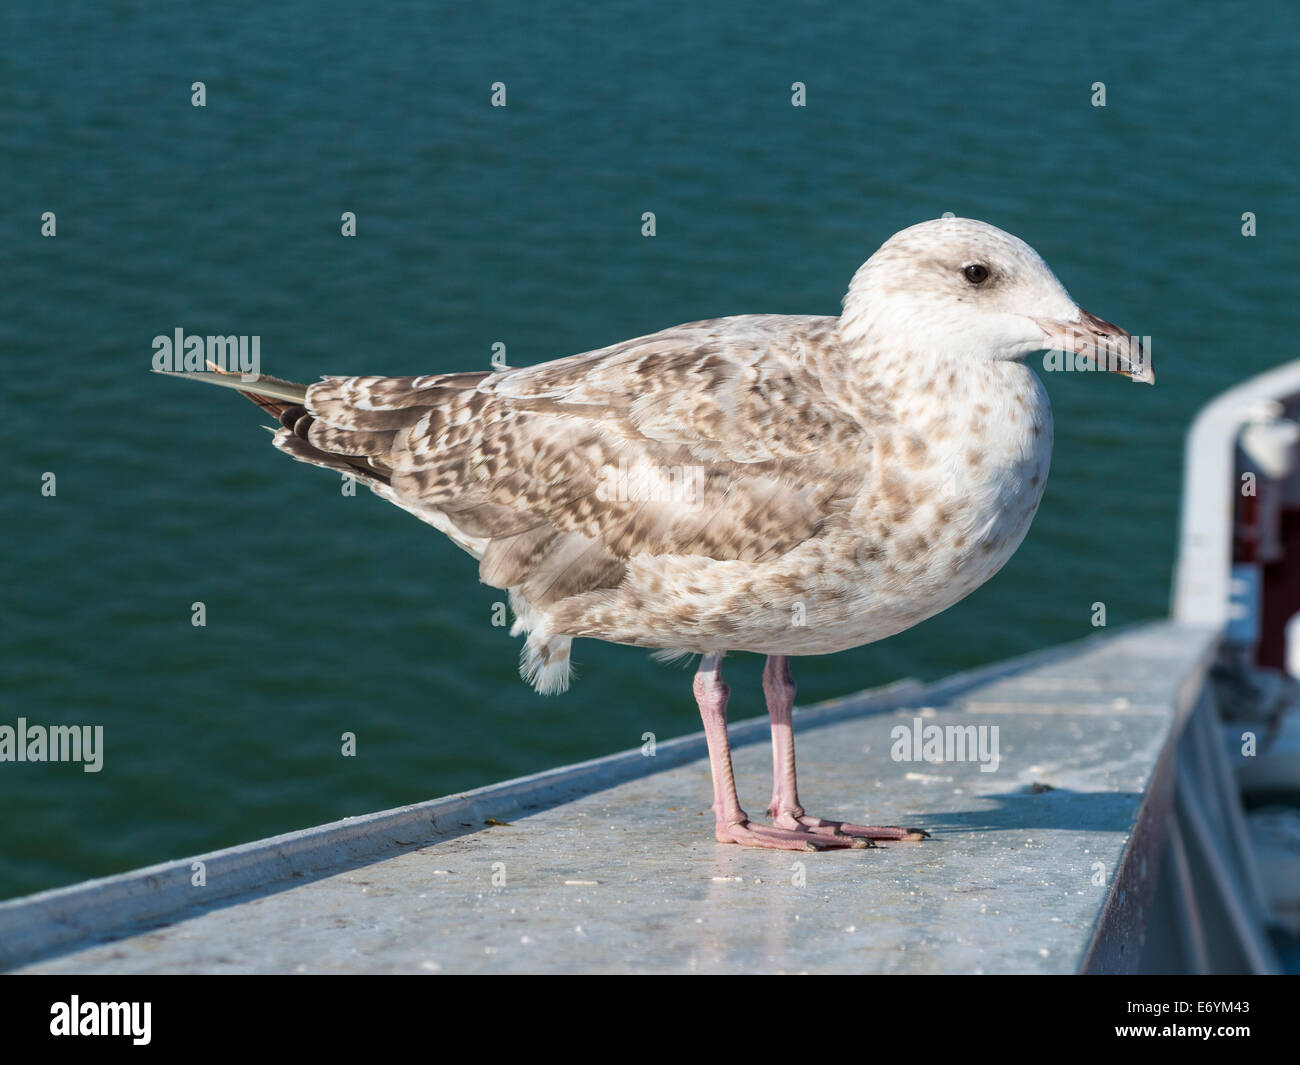 A juvenile Herring Gull (Larus argentatus) standing on a rail, with a background of the sea - Stock Image